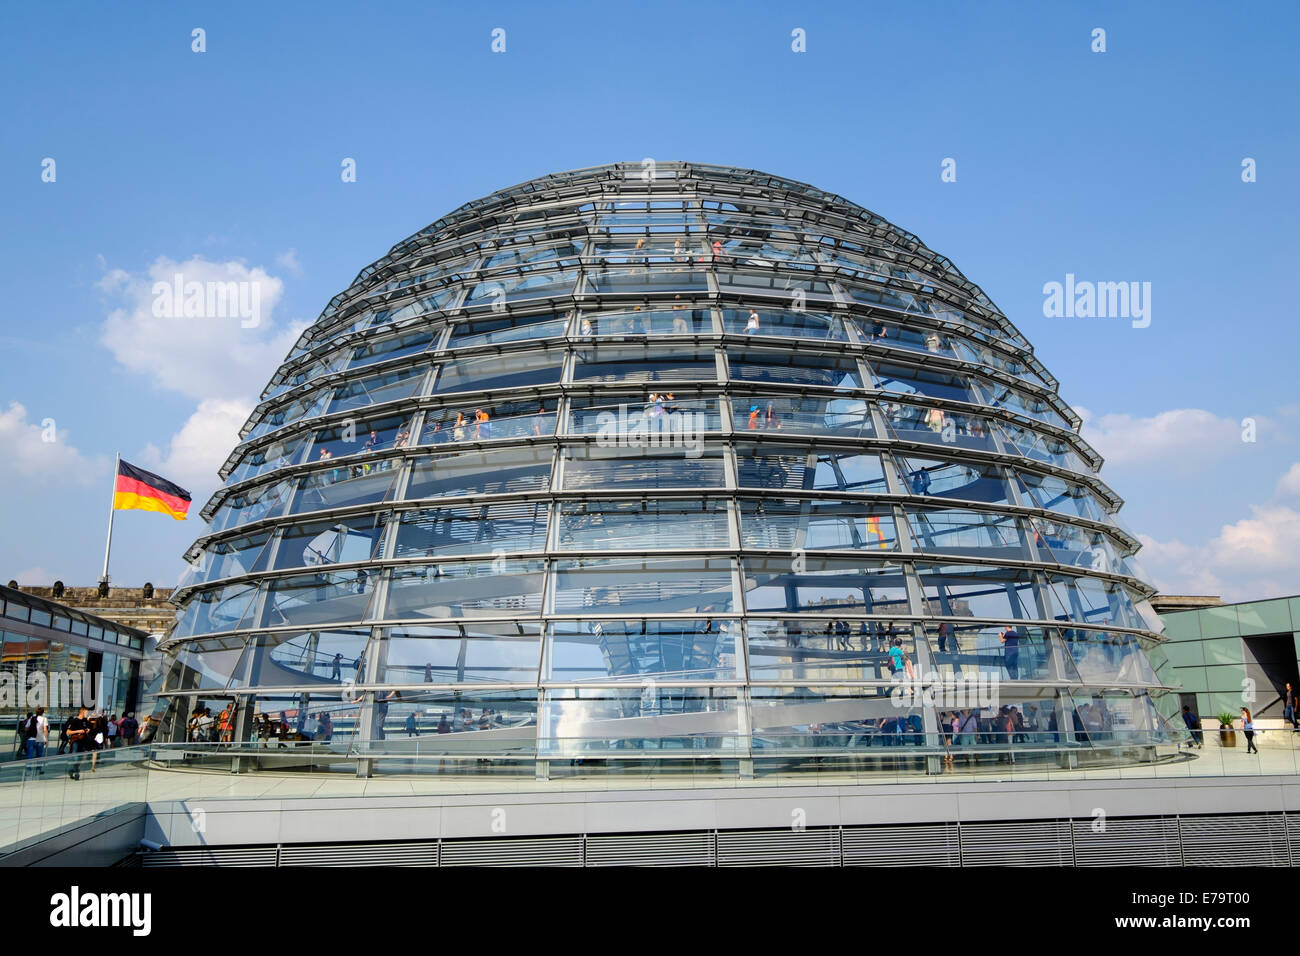 glass dome roof of reichstag parliament building in berlin germany stock photo royalty free. Black Bedroom Furniture Sets. Home Design Ideas